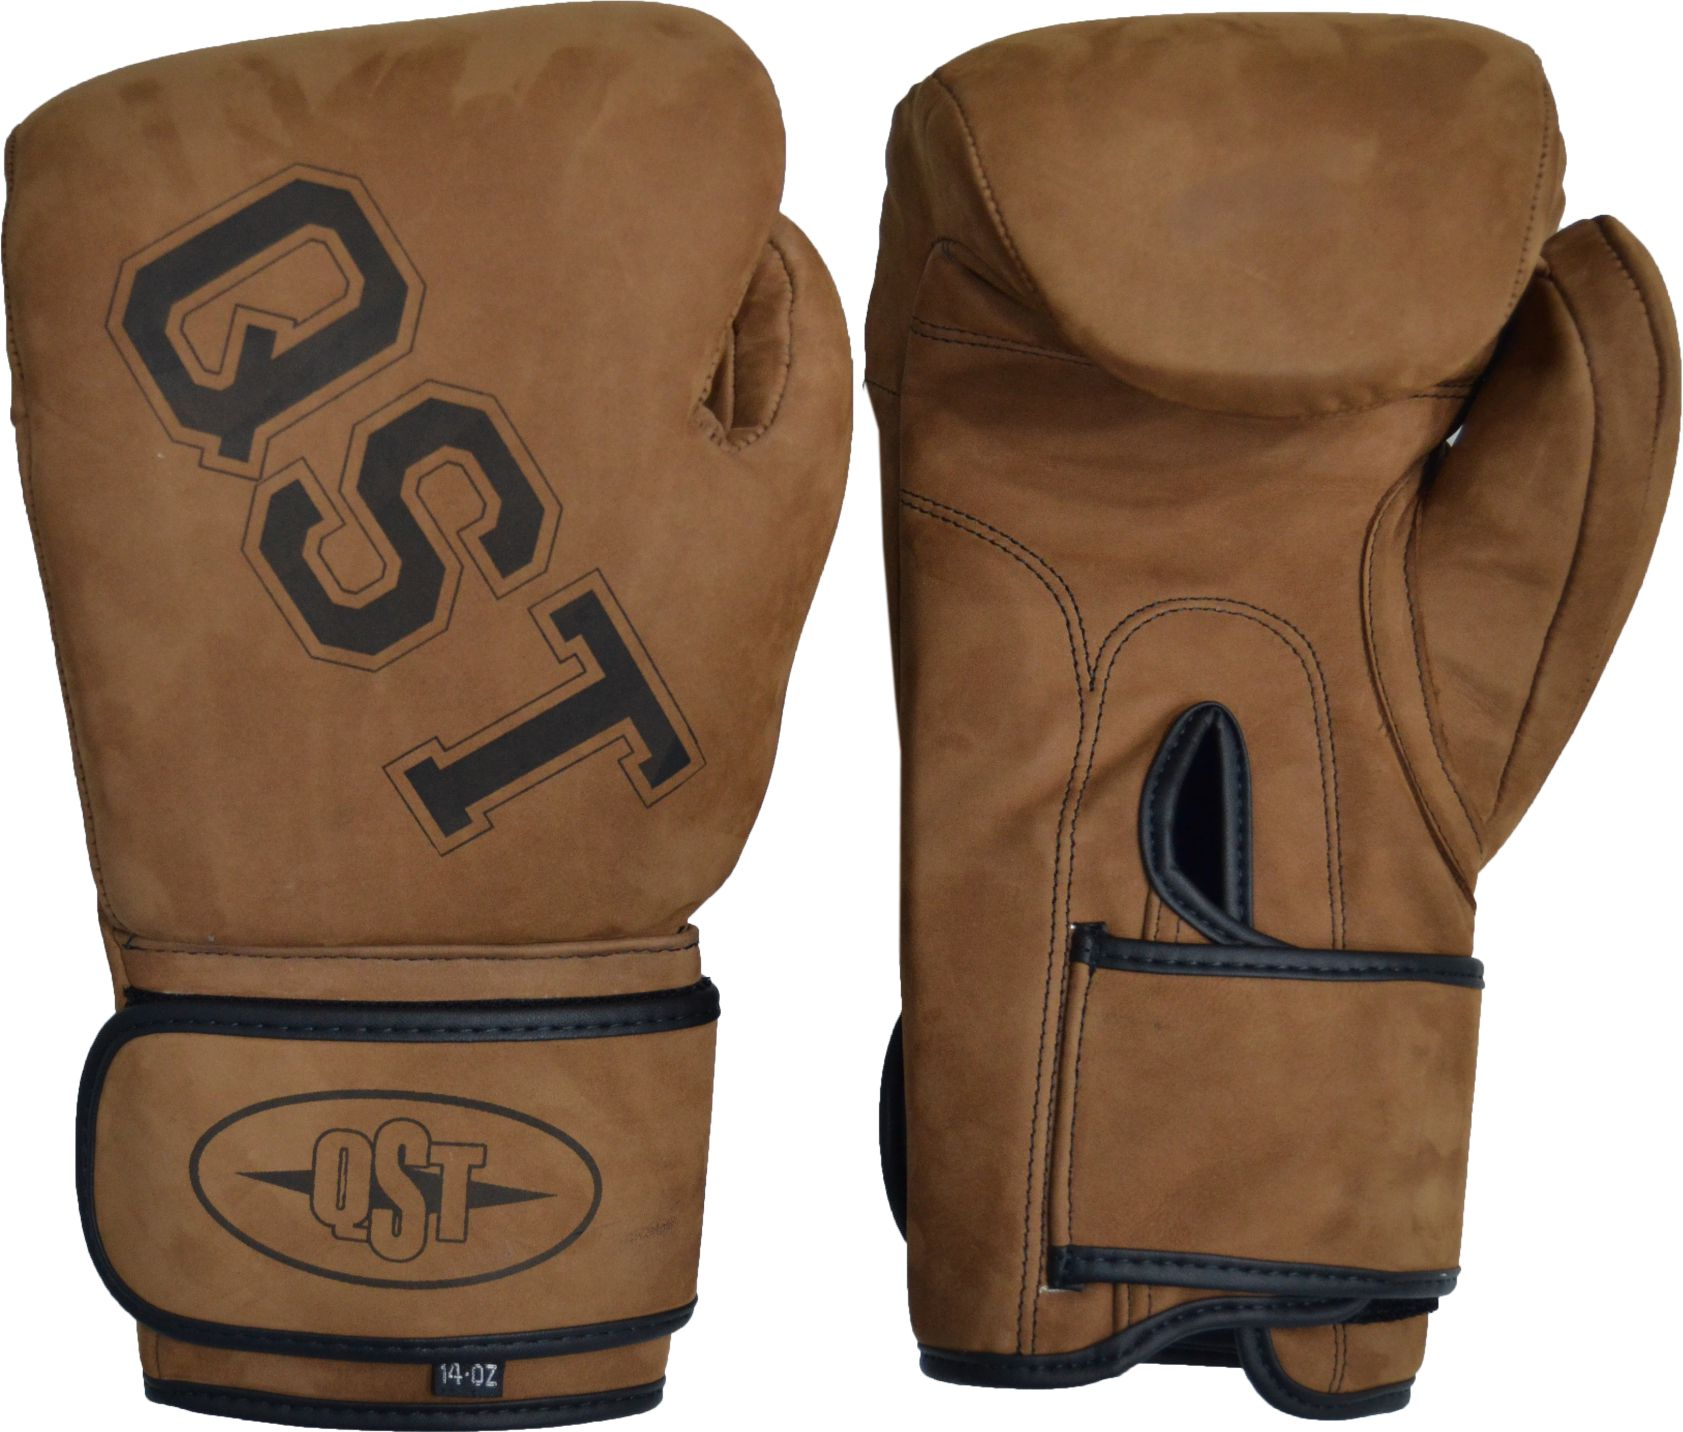 Training Boxing Gloves - PRG-2024